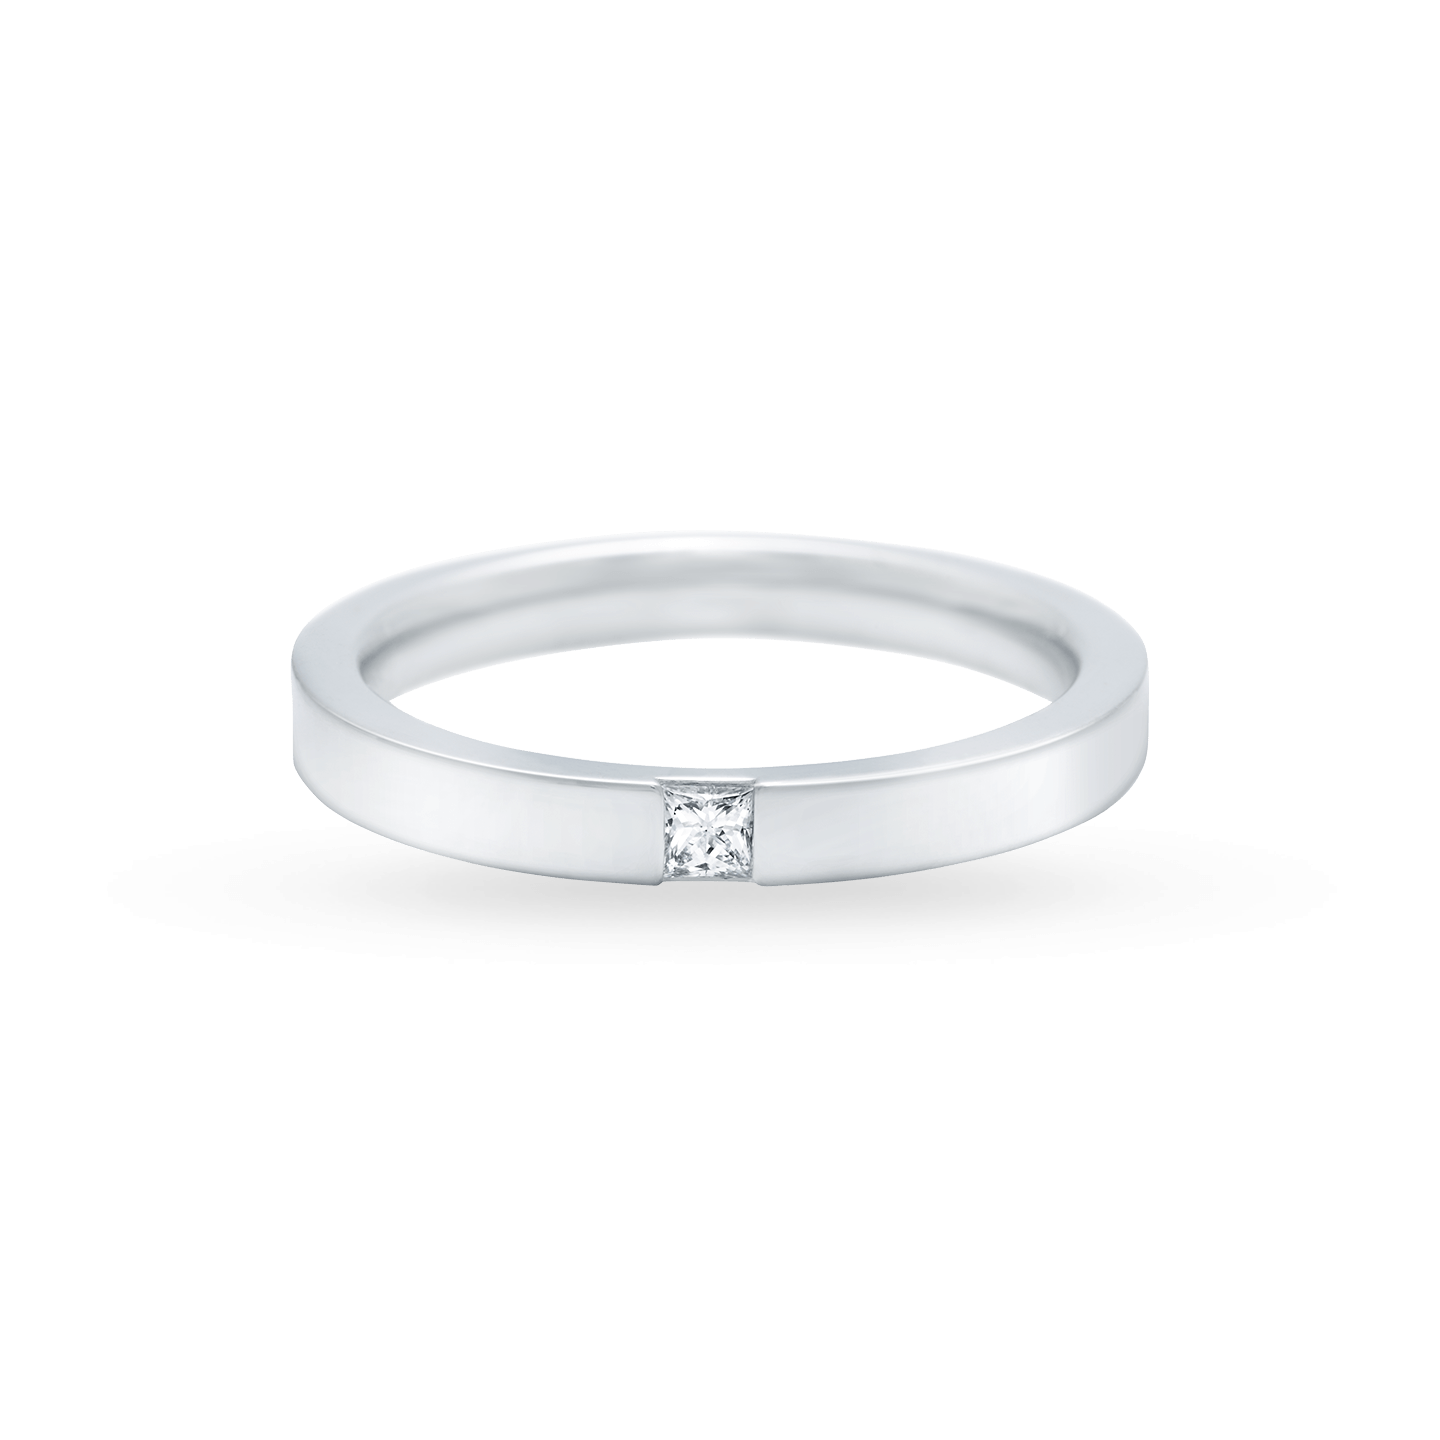 Princess-Cut Single Diamond Wedding Band, Product Image 2